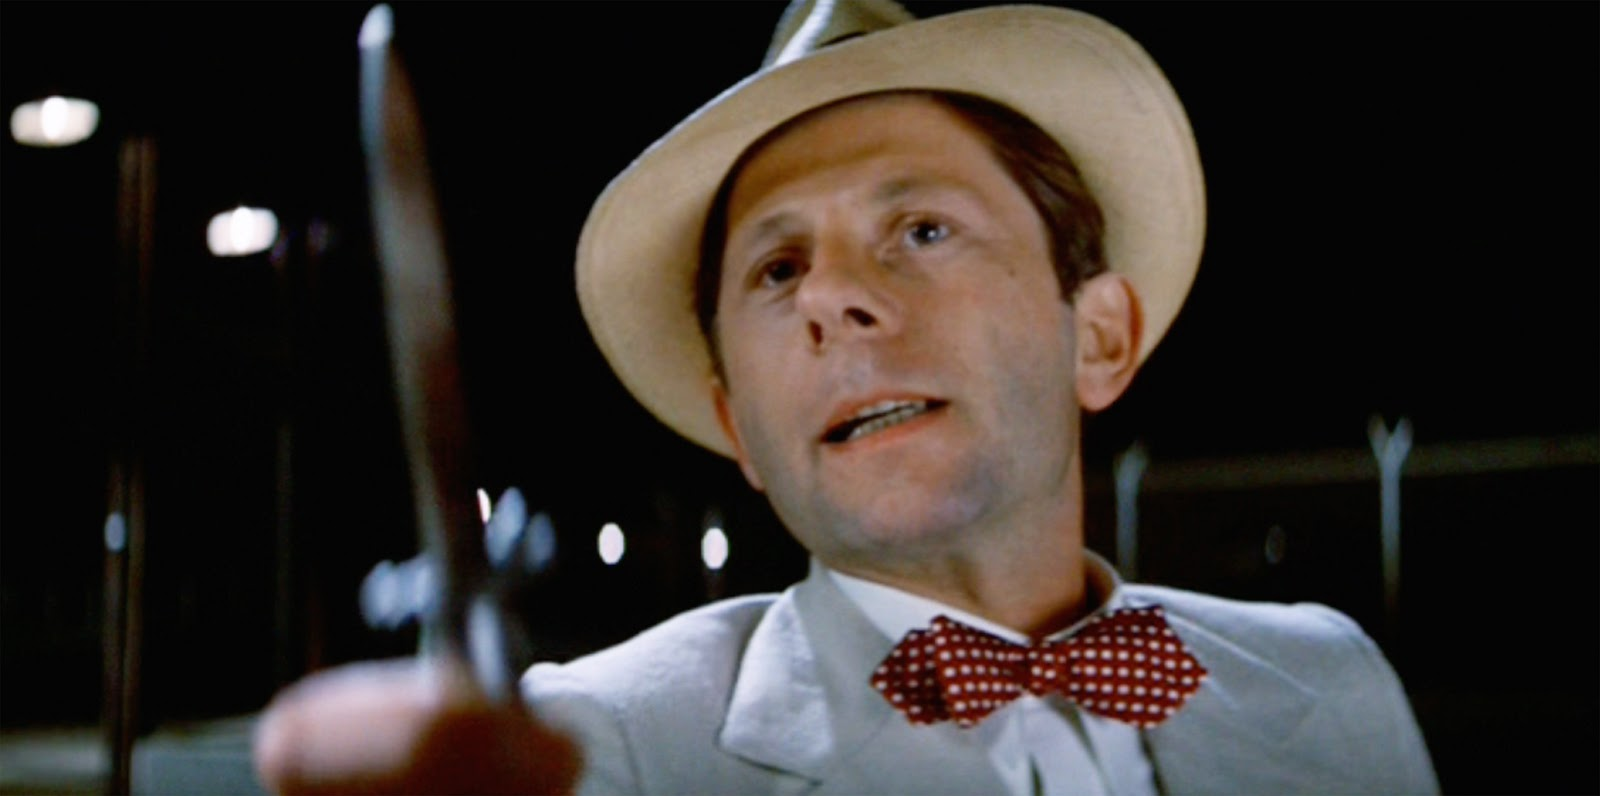 an analysis of chinatown a film by roman polanski Chinatown film analysis chinatown directed by roman polanski created in 1974 explores the dark and twisted world of a pi just trying to do his job polanski tries to show that things and people are not what they seem most of the time.